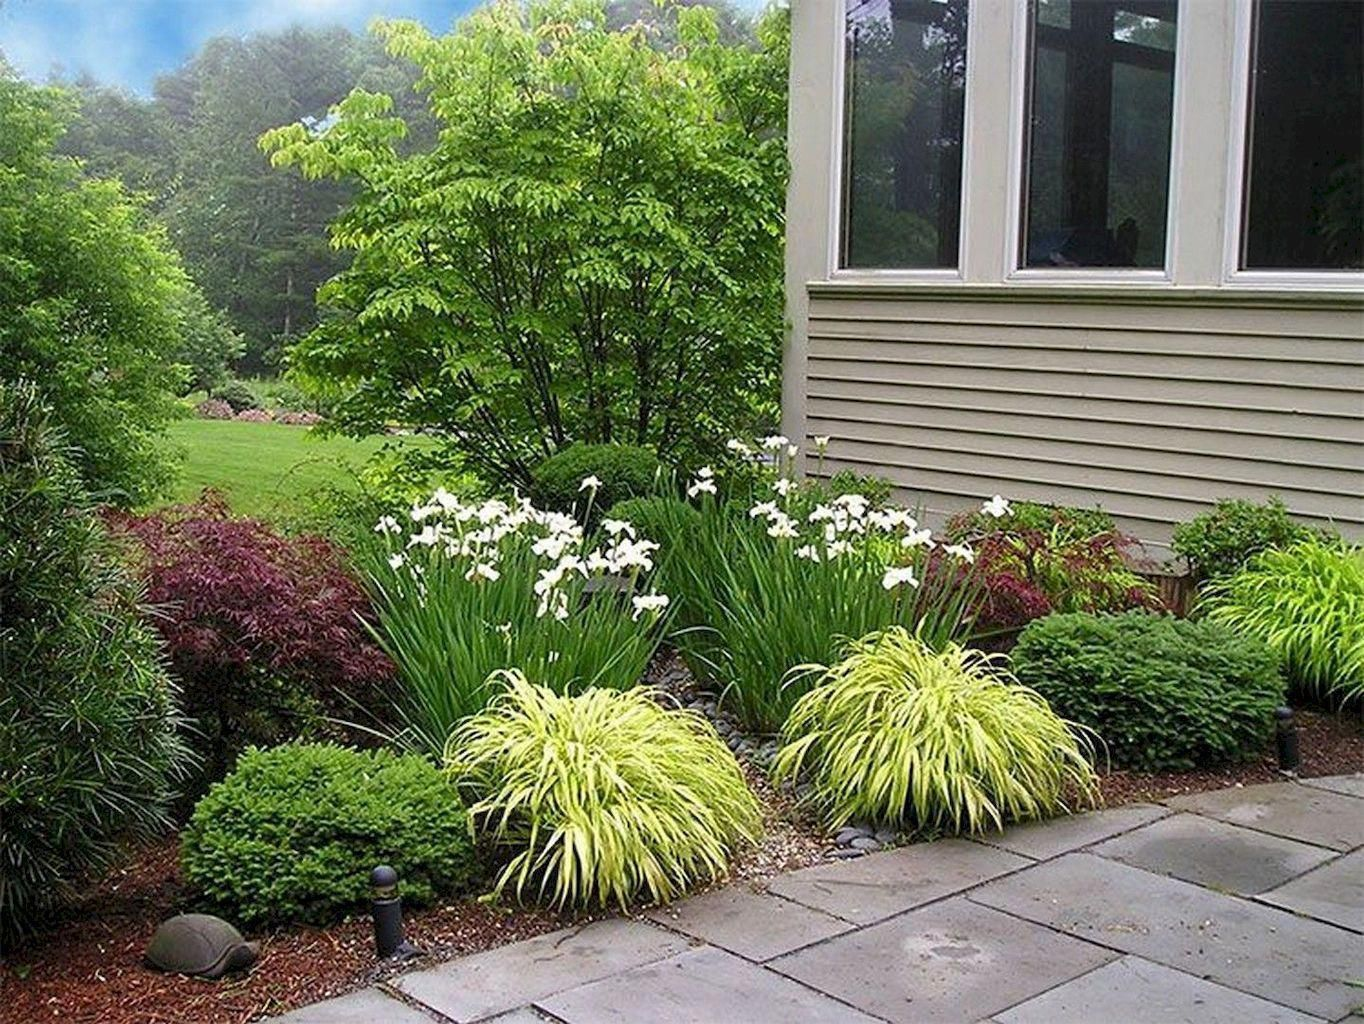 Possibly You Have Looked At This Previously Landscaping Tips Xeriscape Front Yard Cheap Landscaping Ideas Front Yard Garden